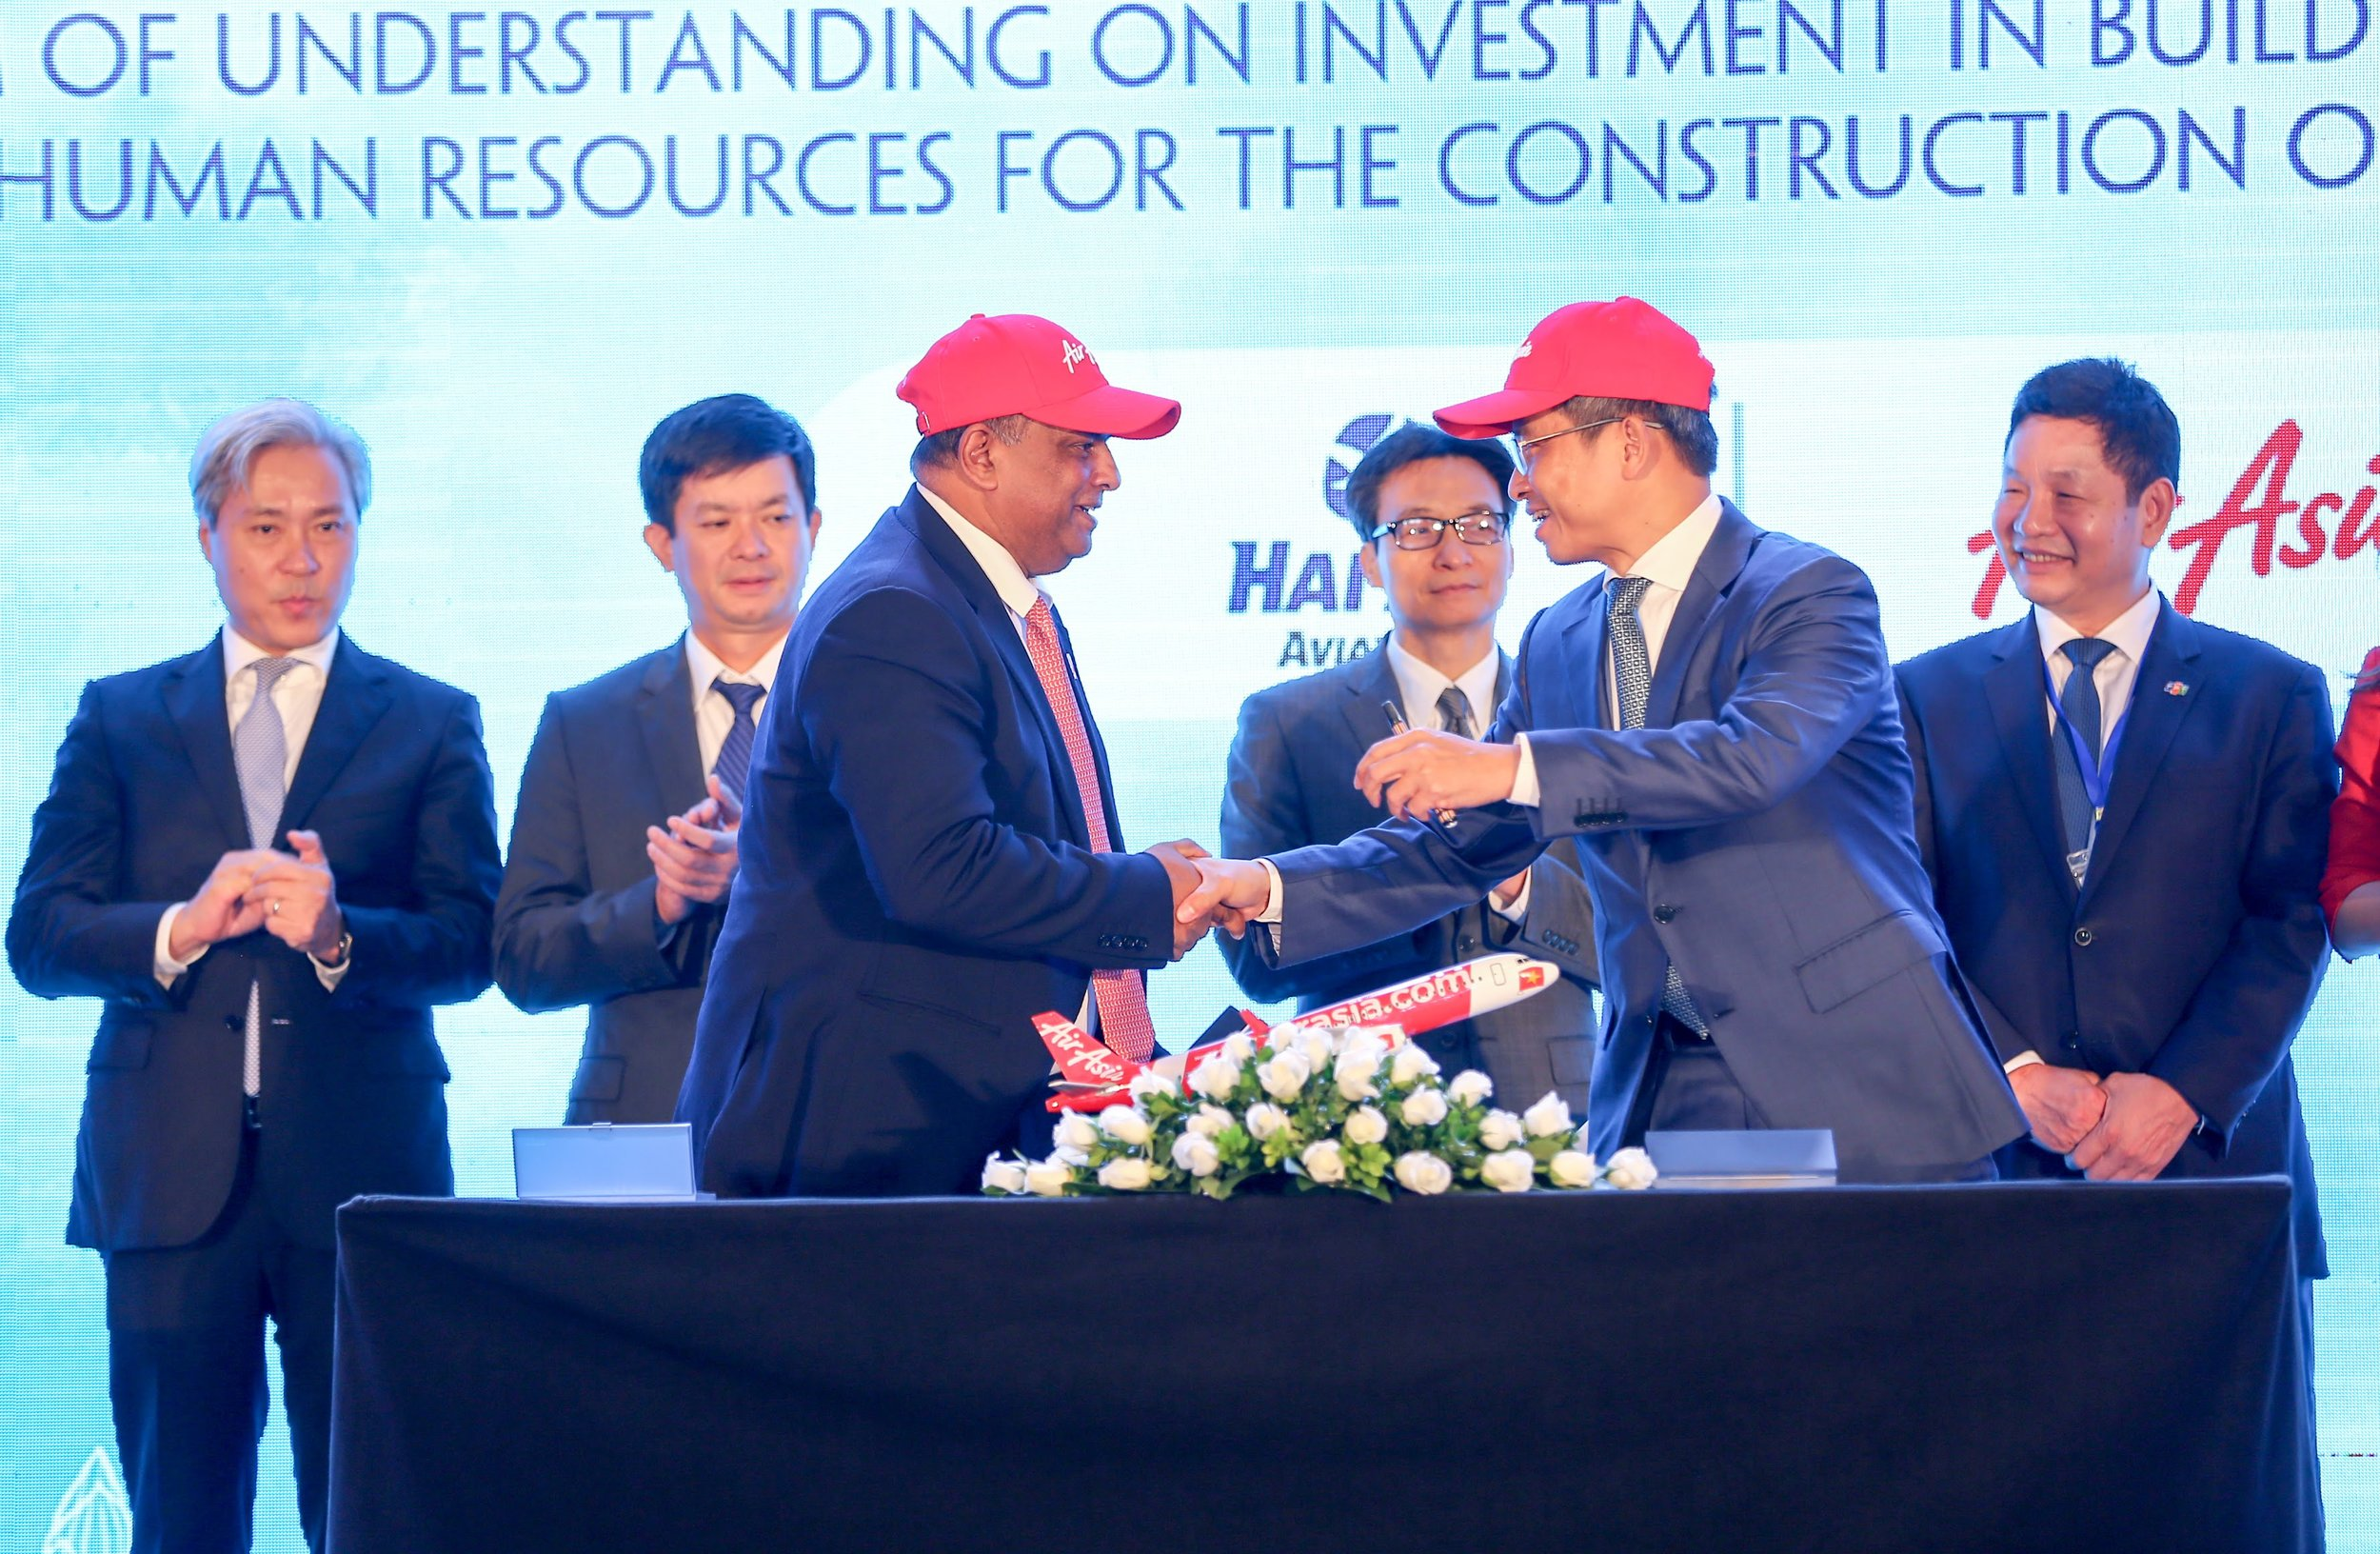 Photo Caption:  AirAsia Group CEO Tony Fernandes (front centre left) shakes hands with Tran Trong Kien, CEO of Thien Minh Travel Joint Stock Company CEO and General Director of Hai Au Aviation Joint Stock Company, after the memorandum signing witnessed by Vietnamese Deputy Prime Minister Vu Duc Dam (centre right) and Vietnamese Deputy Minister of Culture, Sports and Tourism Le Quang Tung (centre left), flanked by the Vice Chairmen of the Vietnamese Advisory Council to the Prime Minister on Administrative Procedures Reform, VinaCapital Group CO-Founder and CEO Don Lam (far left) and FPT Corporation Co-Founder, Chairman and CEO Truong Gia Binh (far right), who is also Chairman of Vietnam's Private Sector Development Committee.